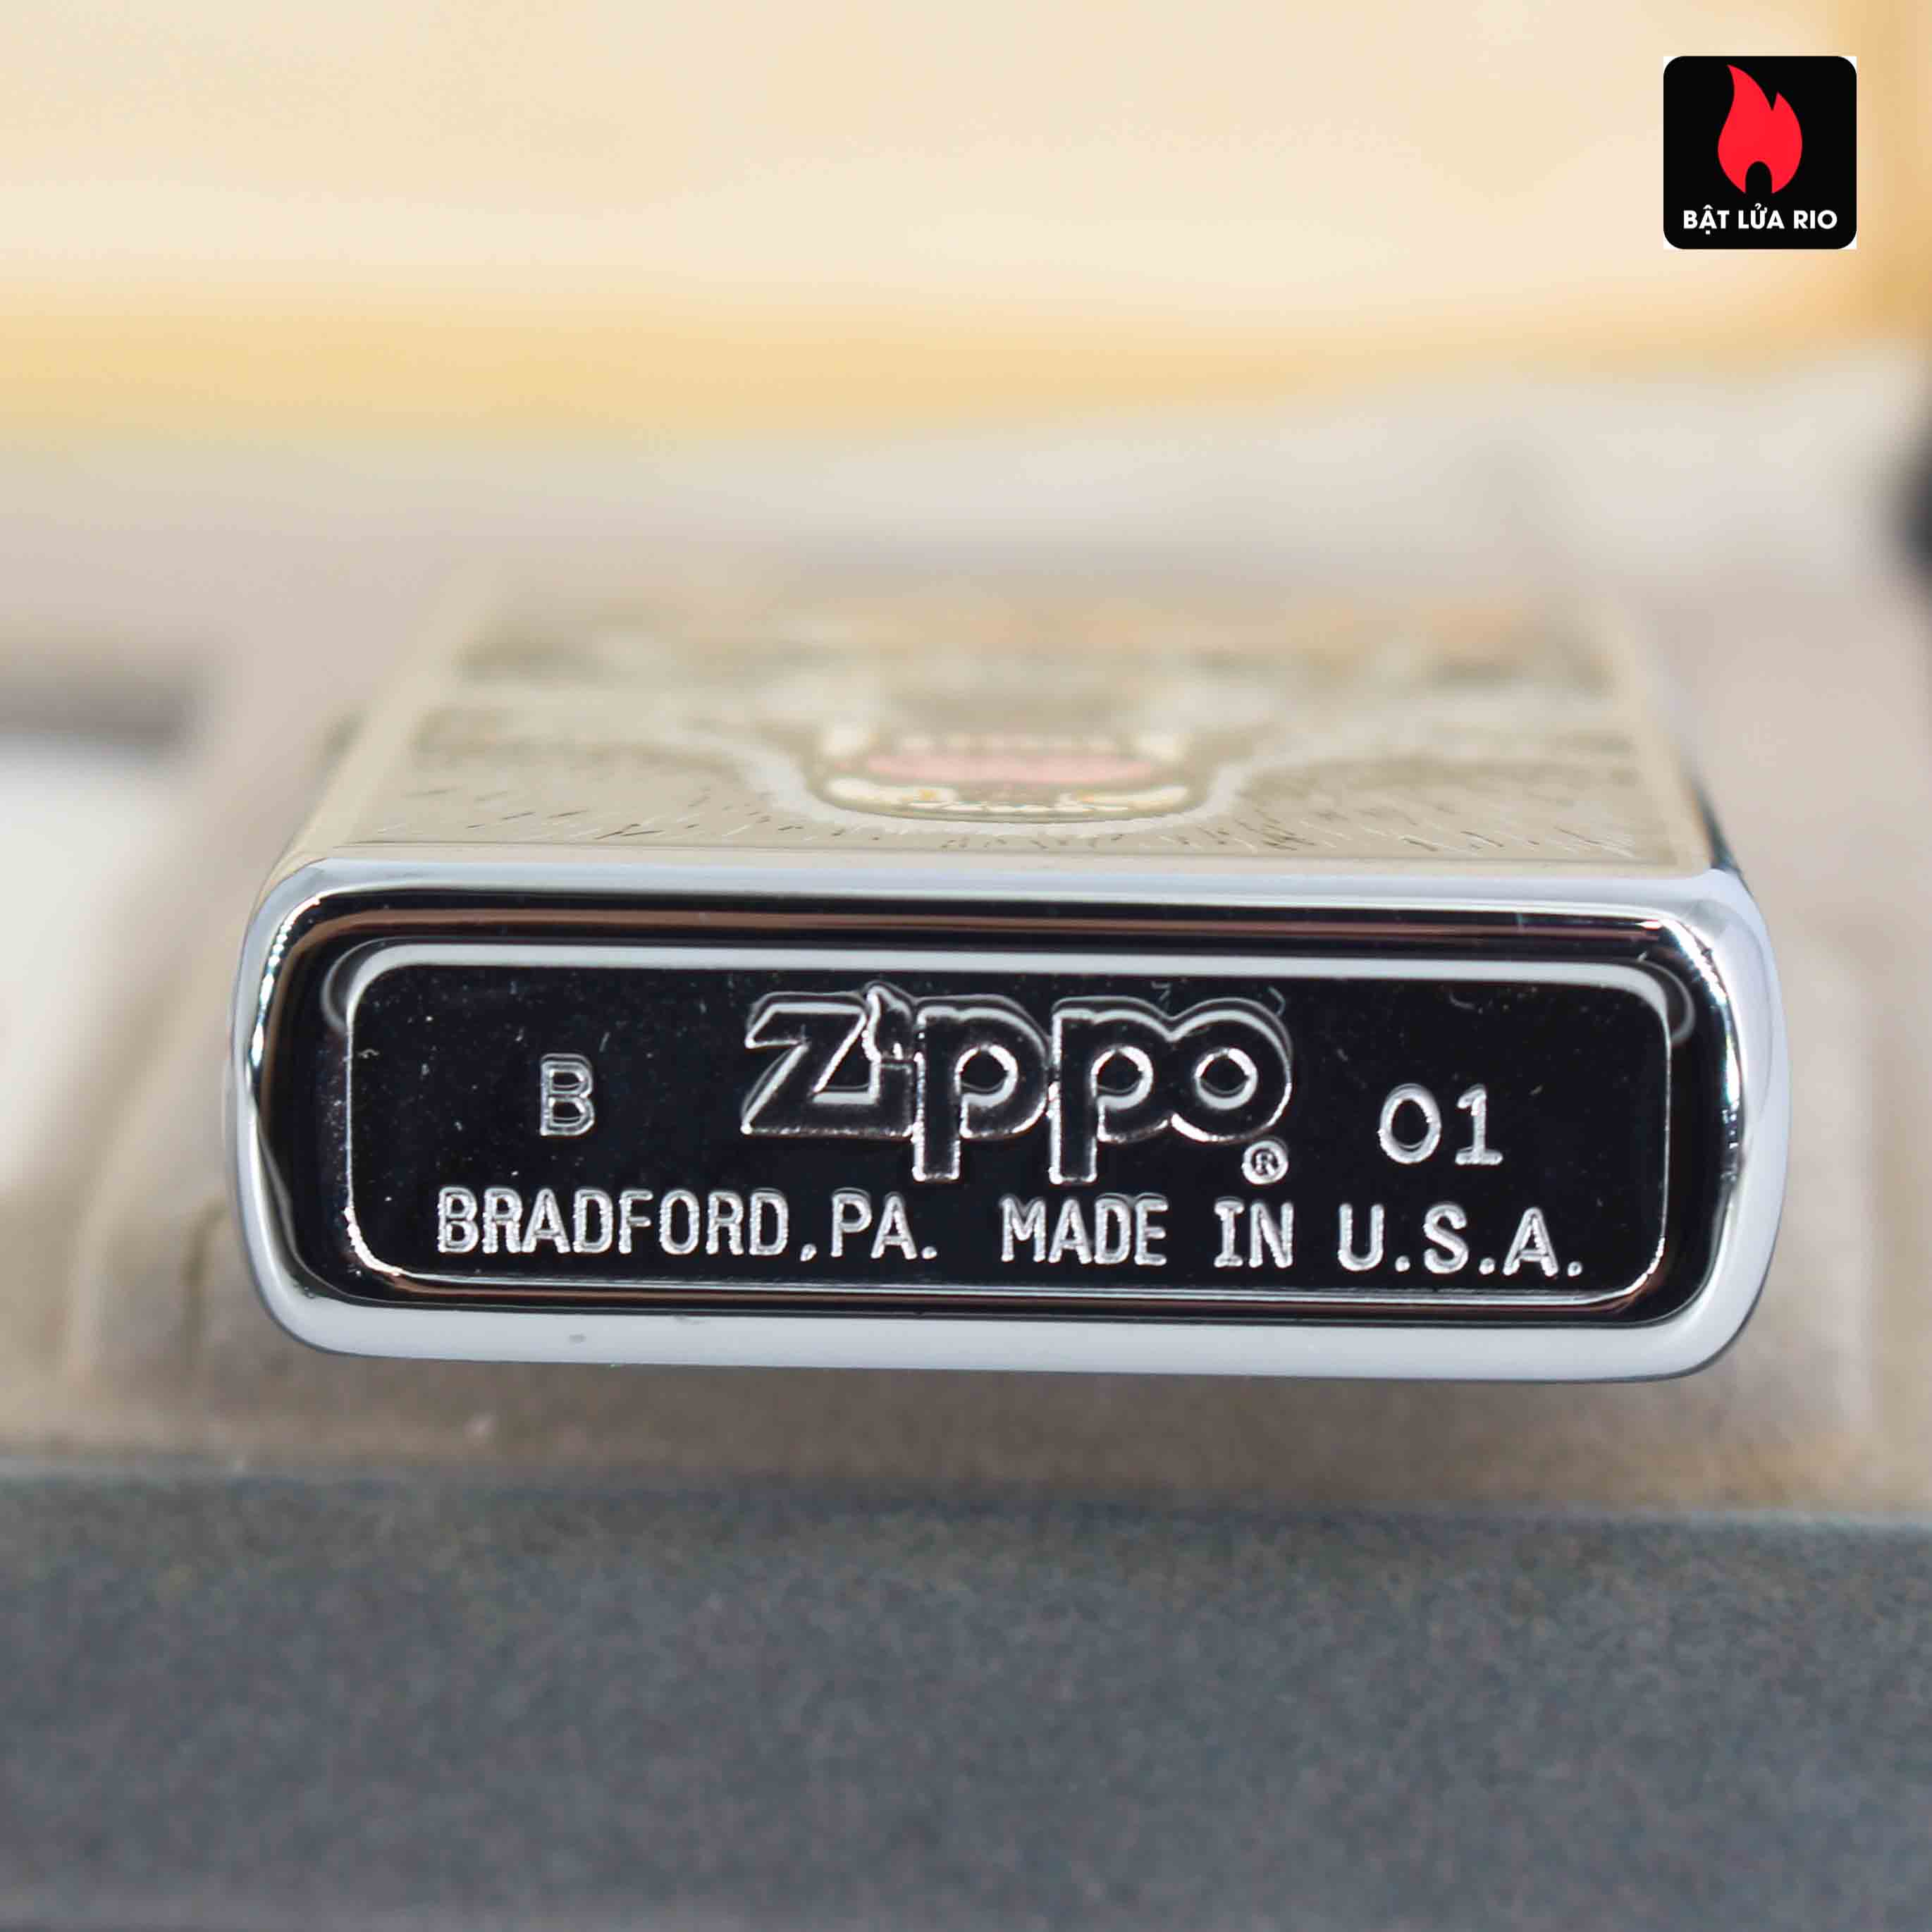 Zippo 2001 - Wild Lighters Edition - Limited Edition /1000 13